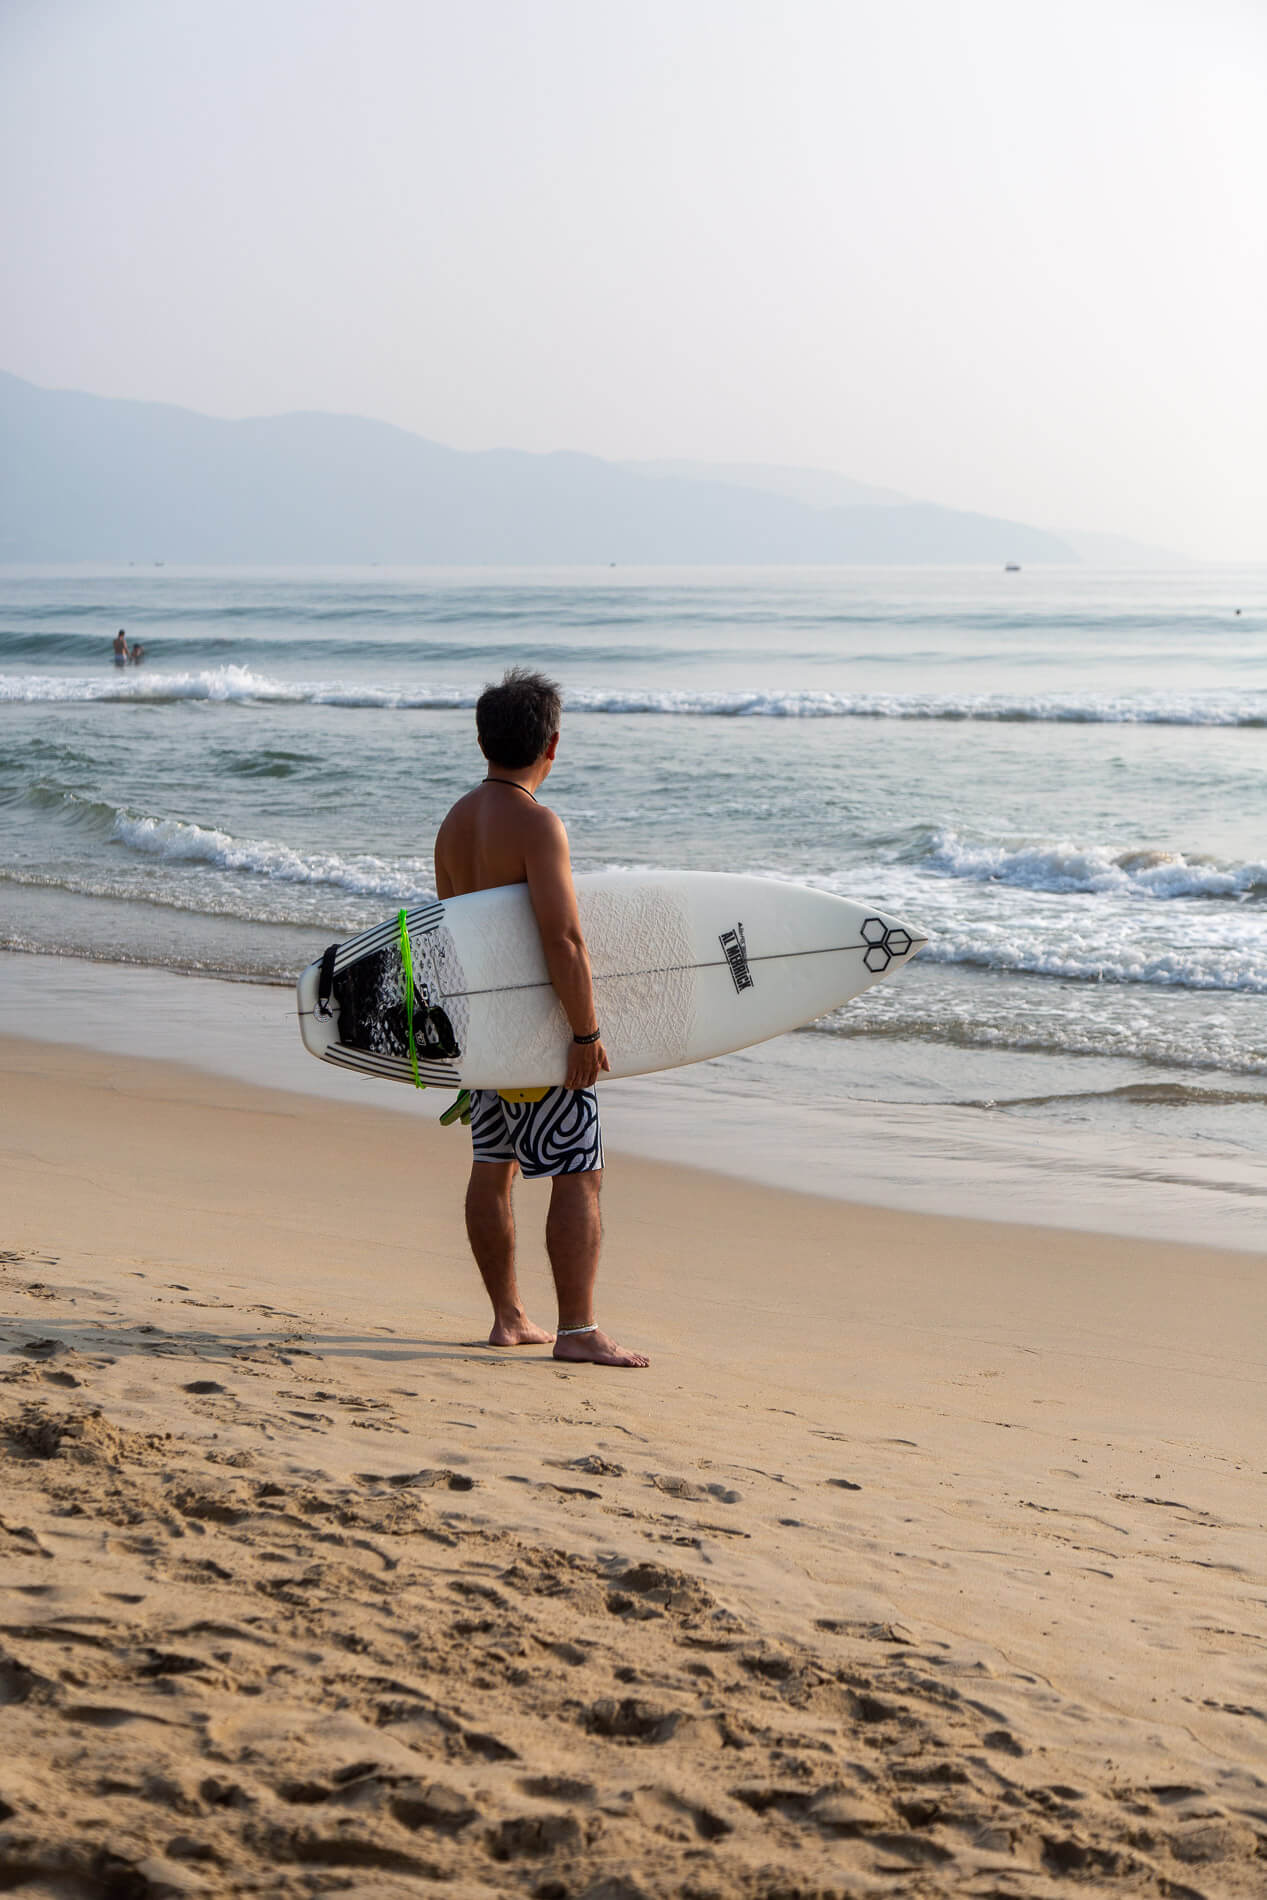 a surfer in Da Nang